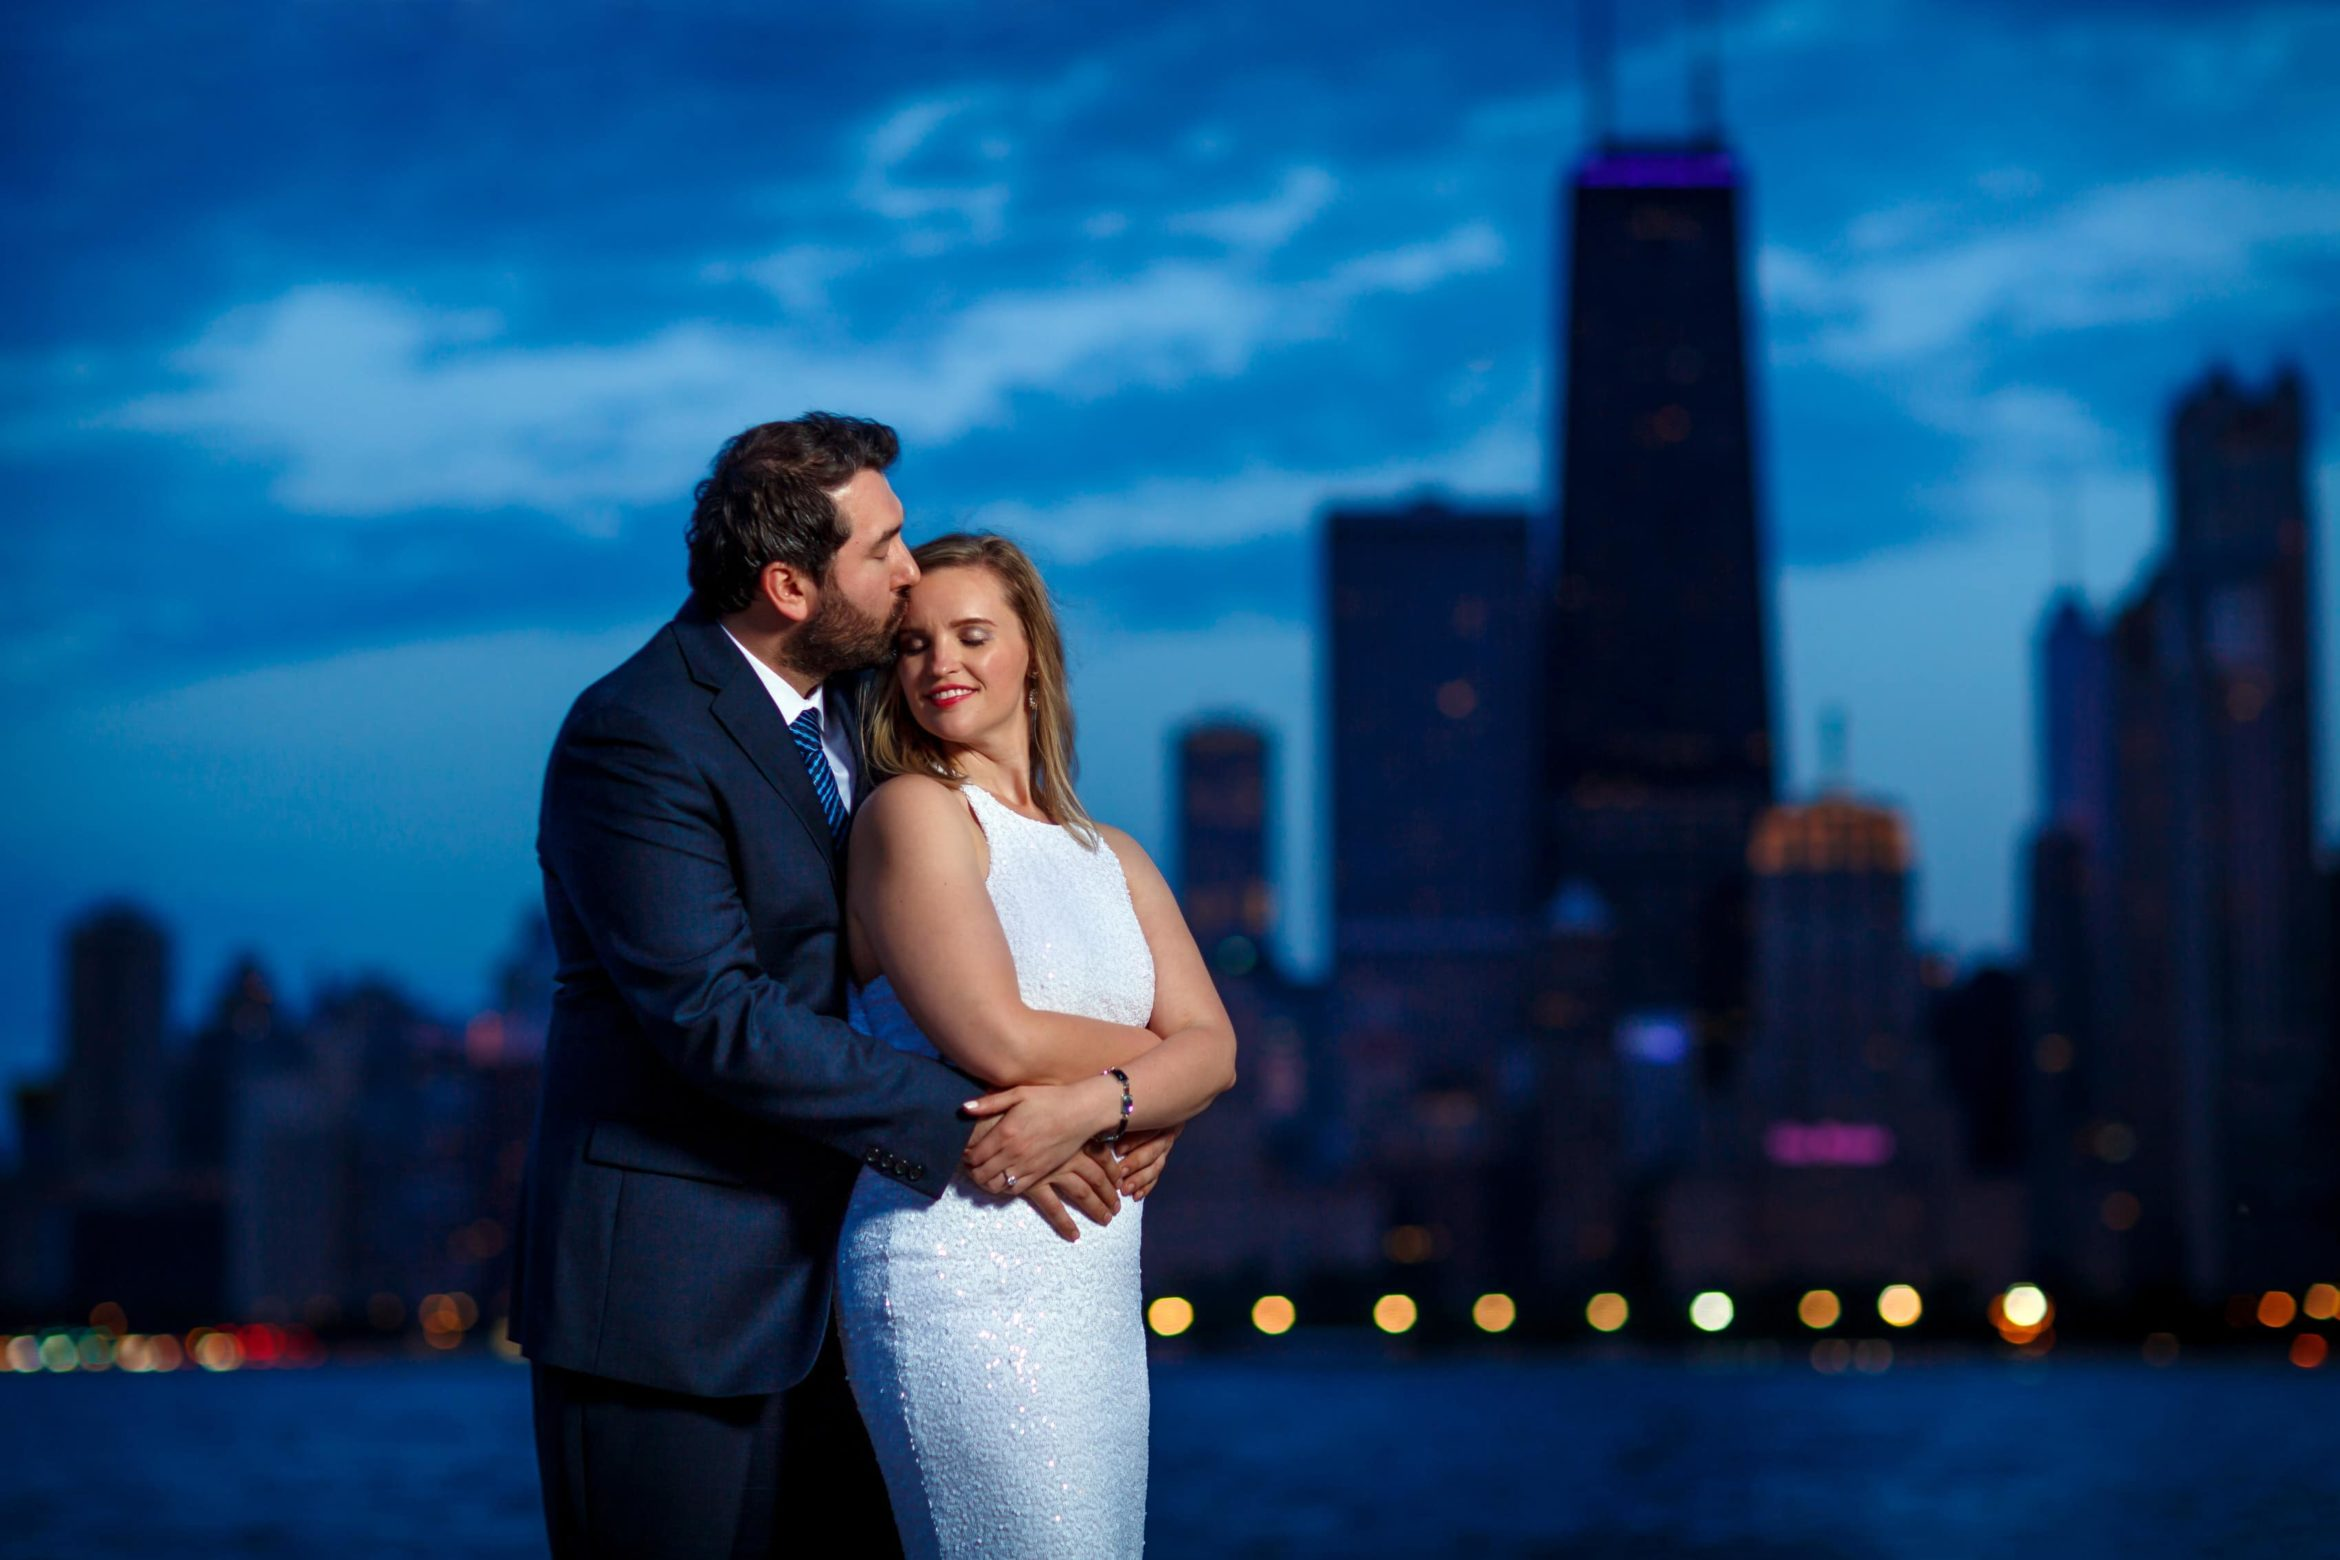 North-Avenue-beach-engagement-photos-with-a-bride-to-be-smiling-during-their-night-time-engagement-session-with-the-Chicago-skyline-in-the-background-06